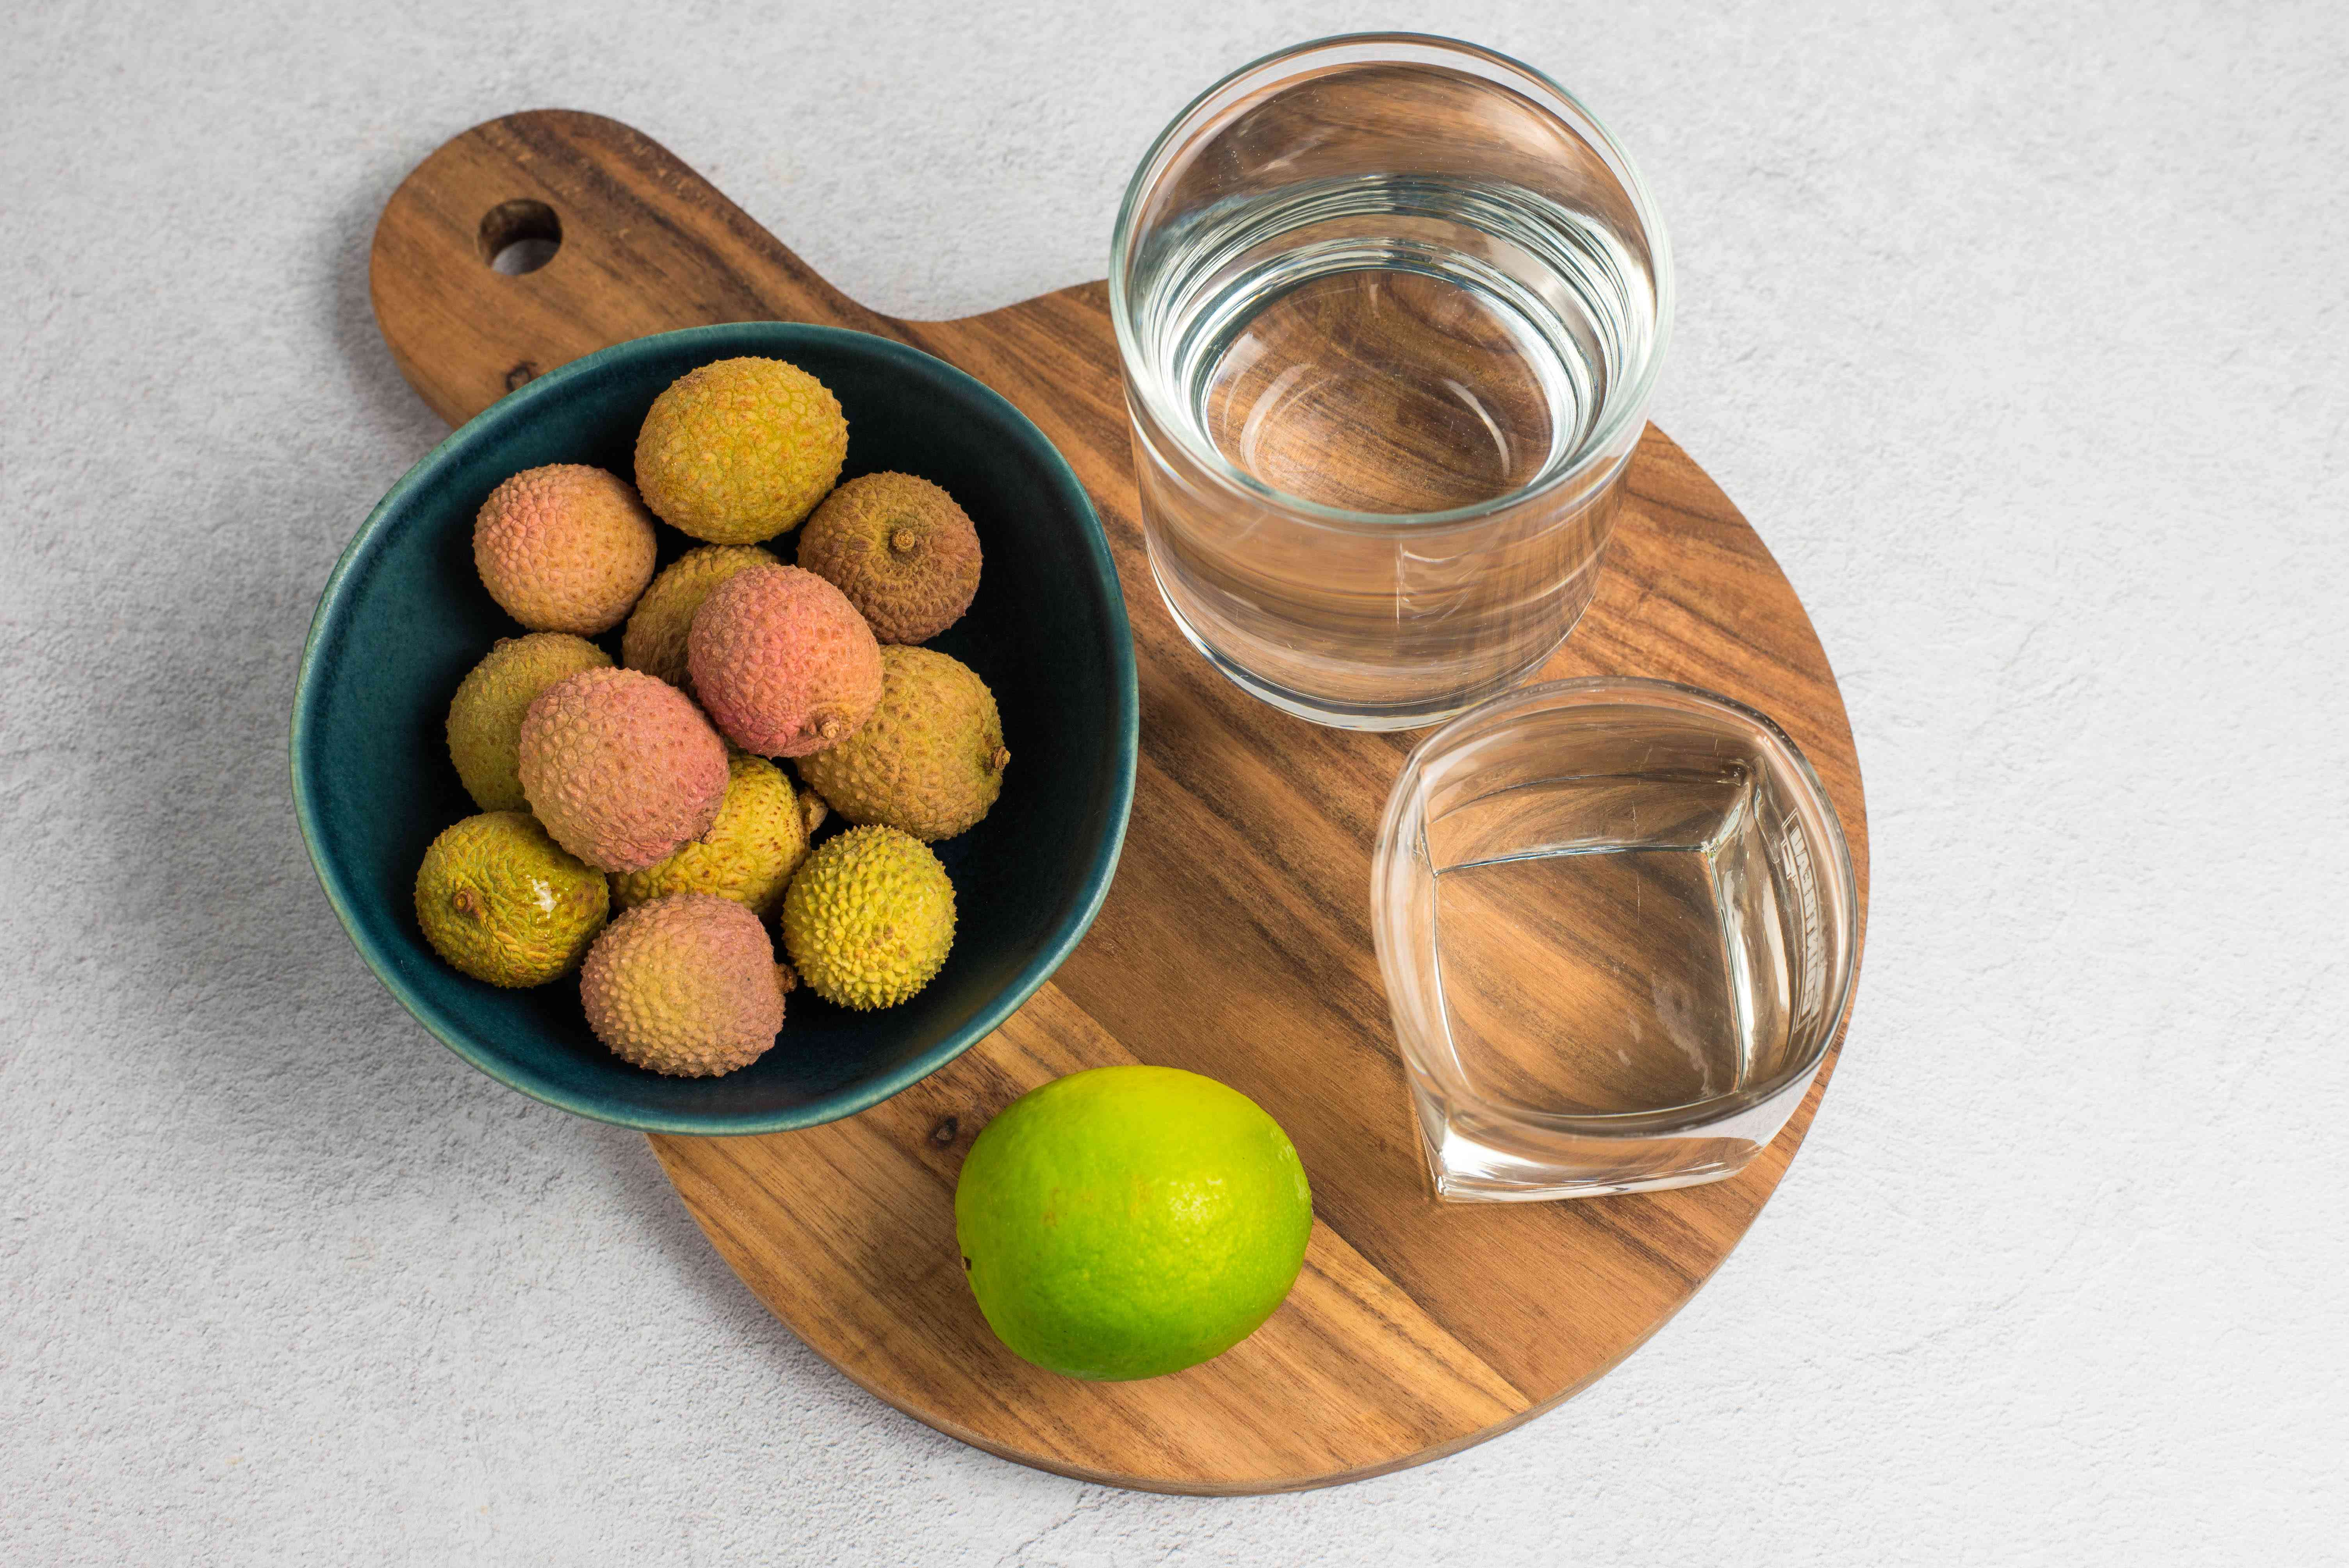 Ingredients for lychee liqueur